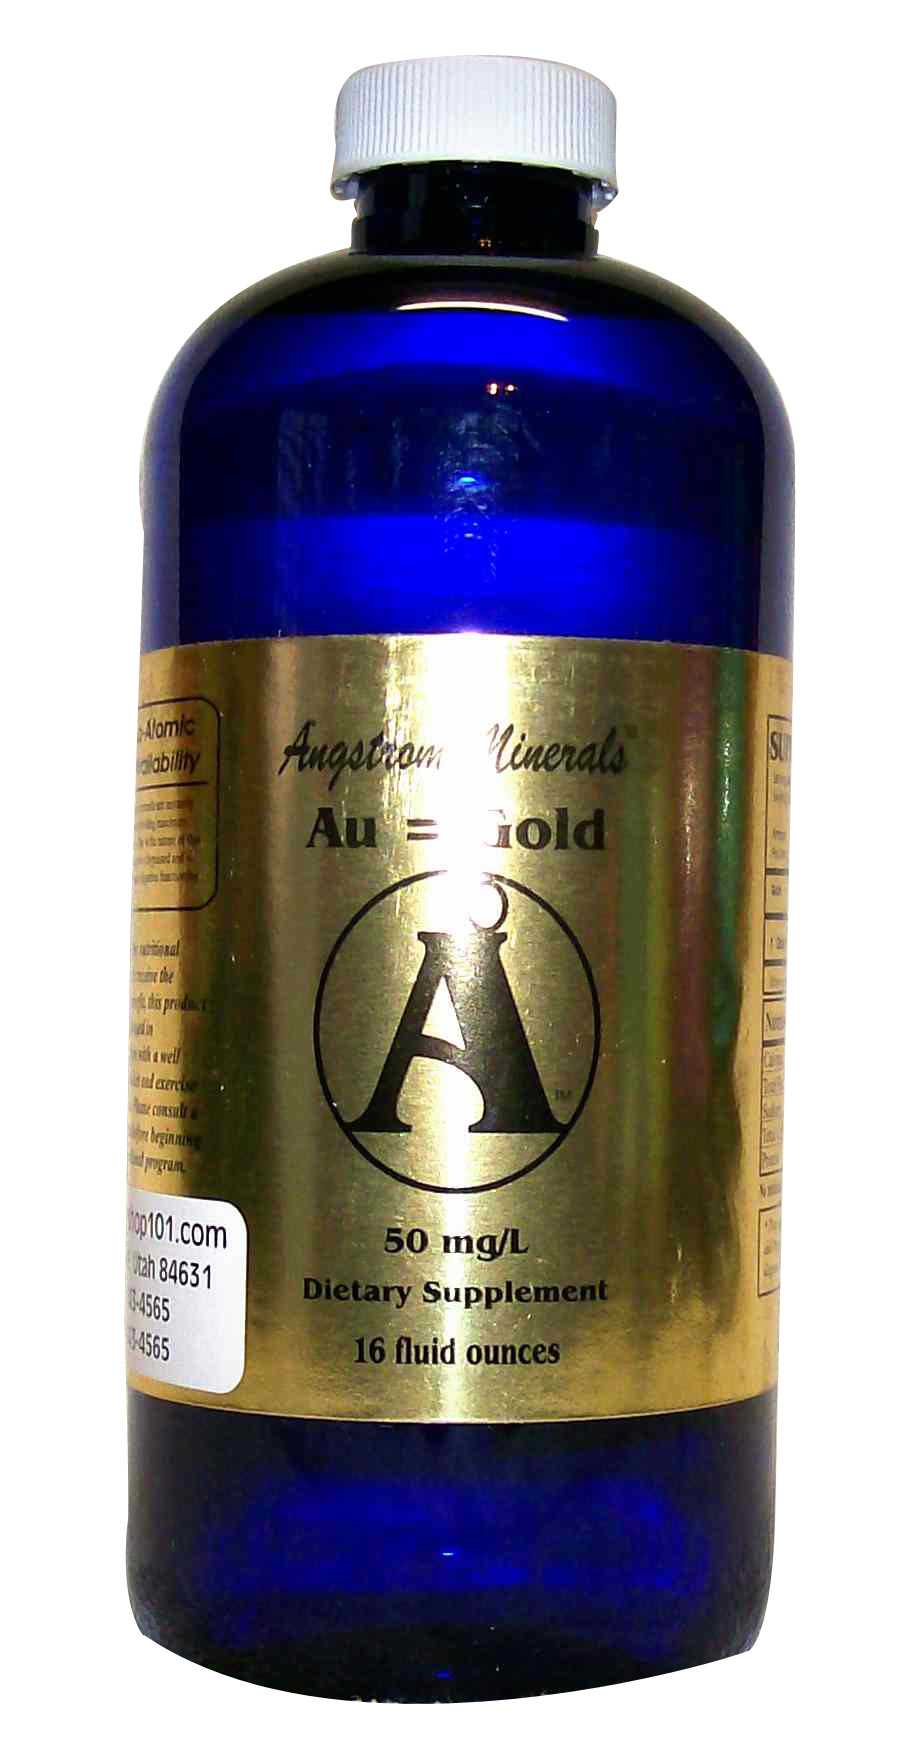 angstrom gold